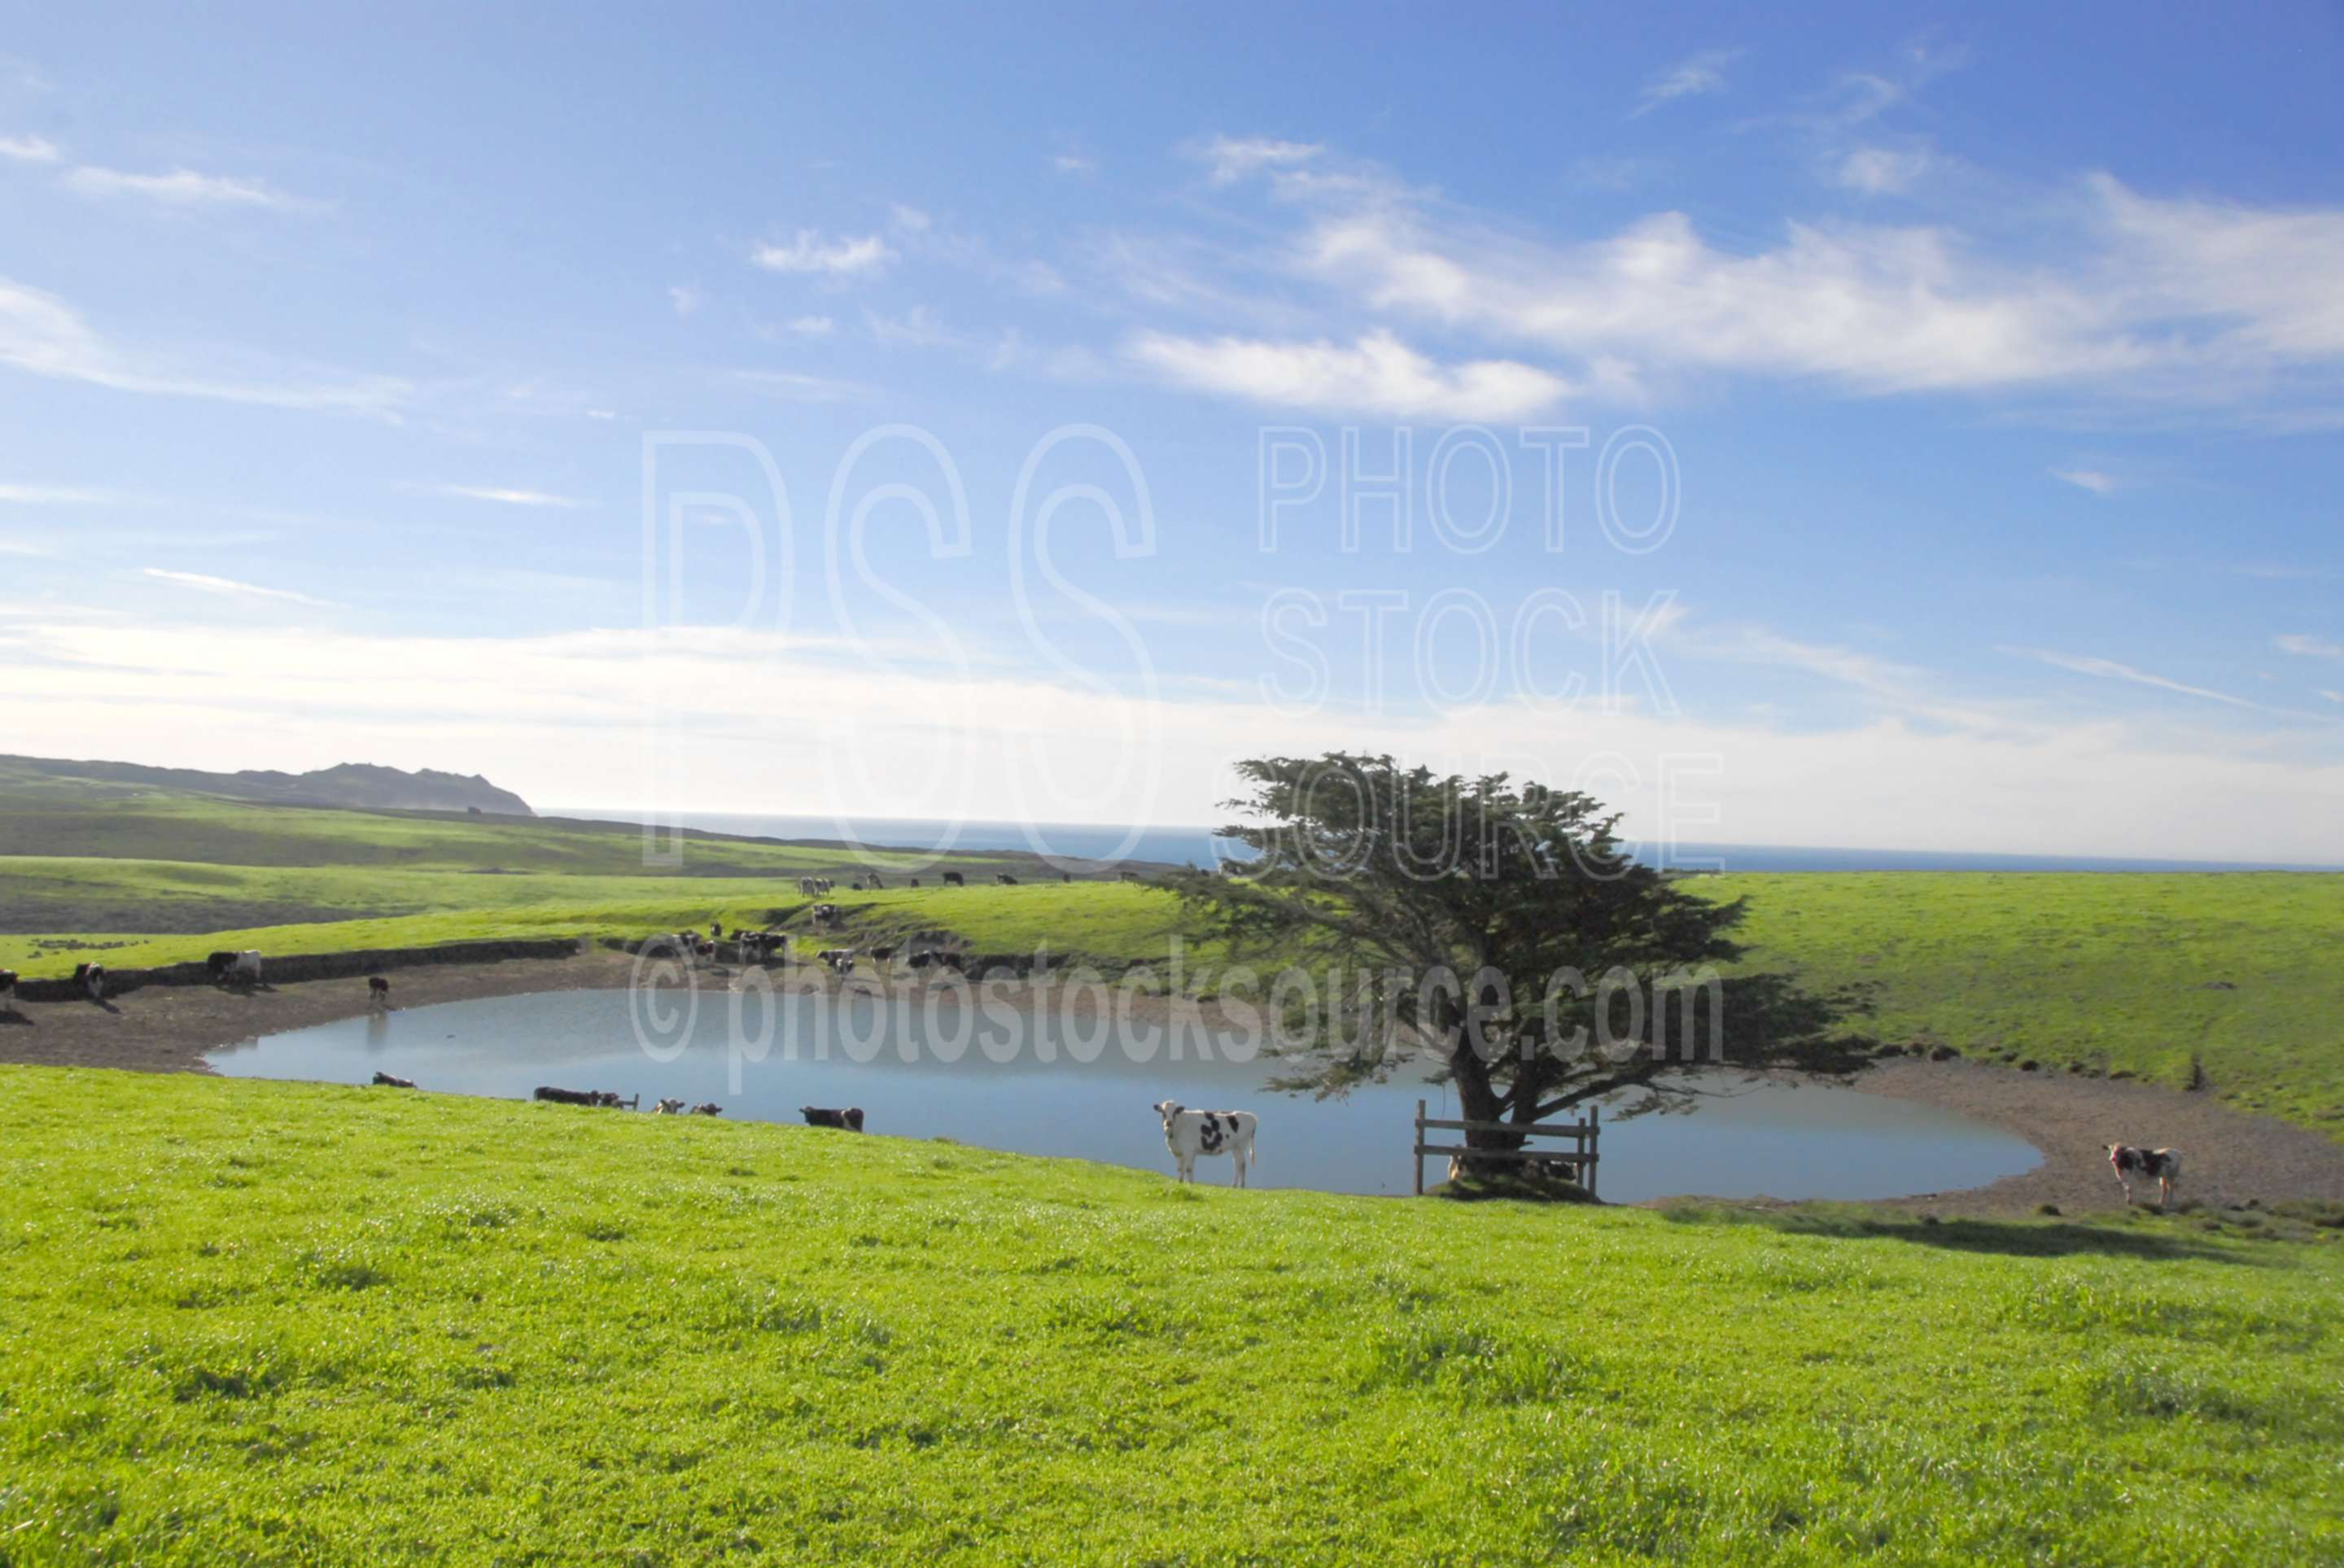 Point Reyes Water Hole,water hole,cattle,lake,pond,farms